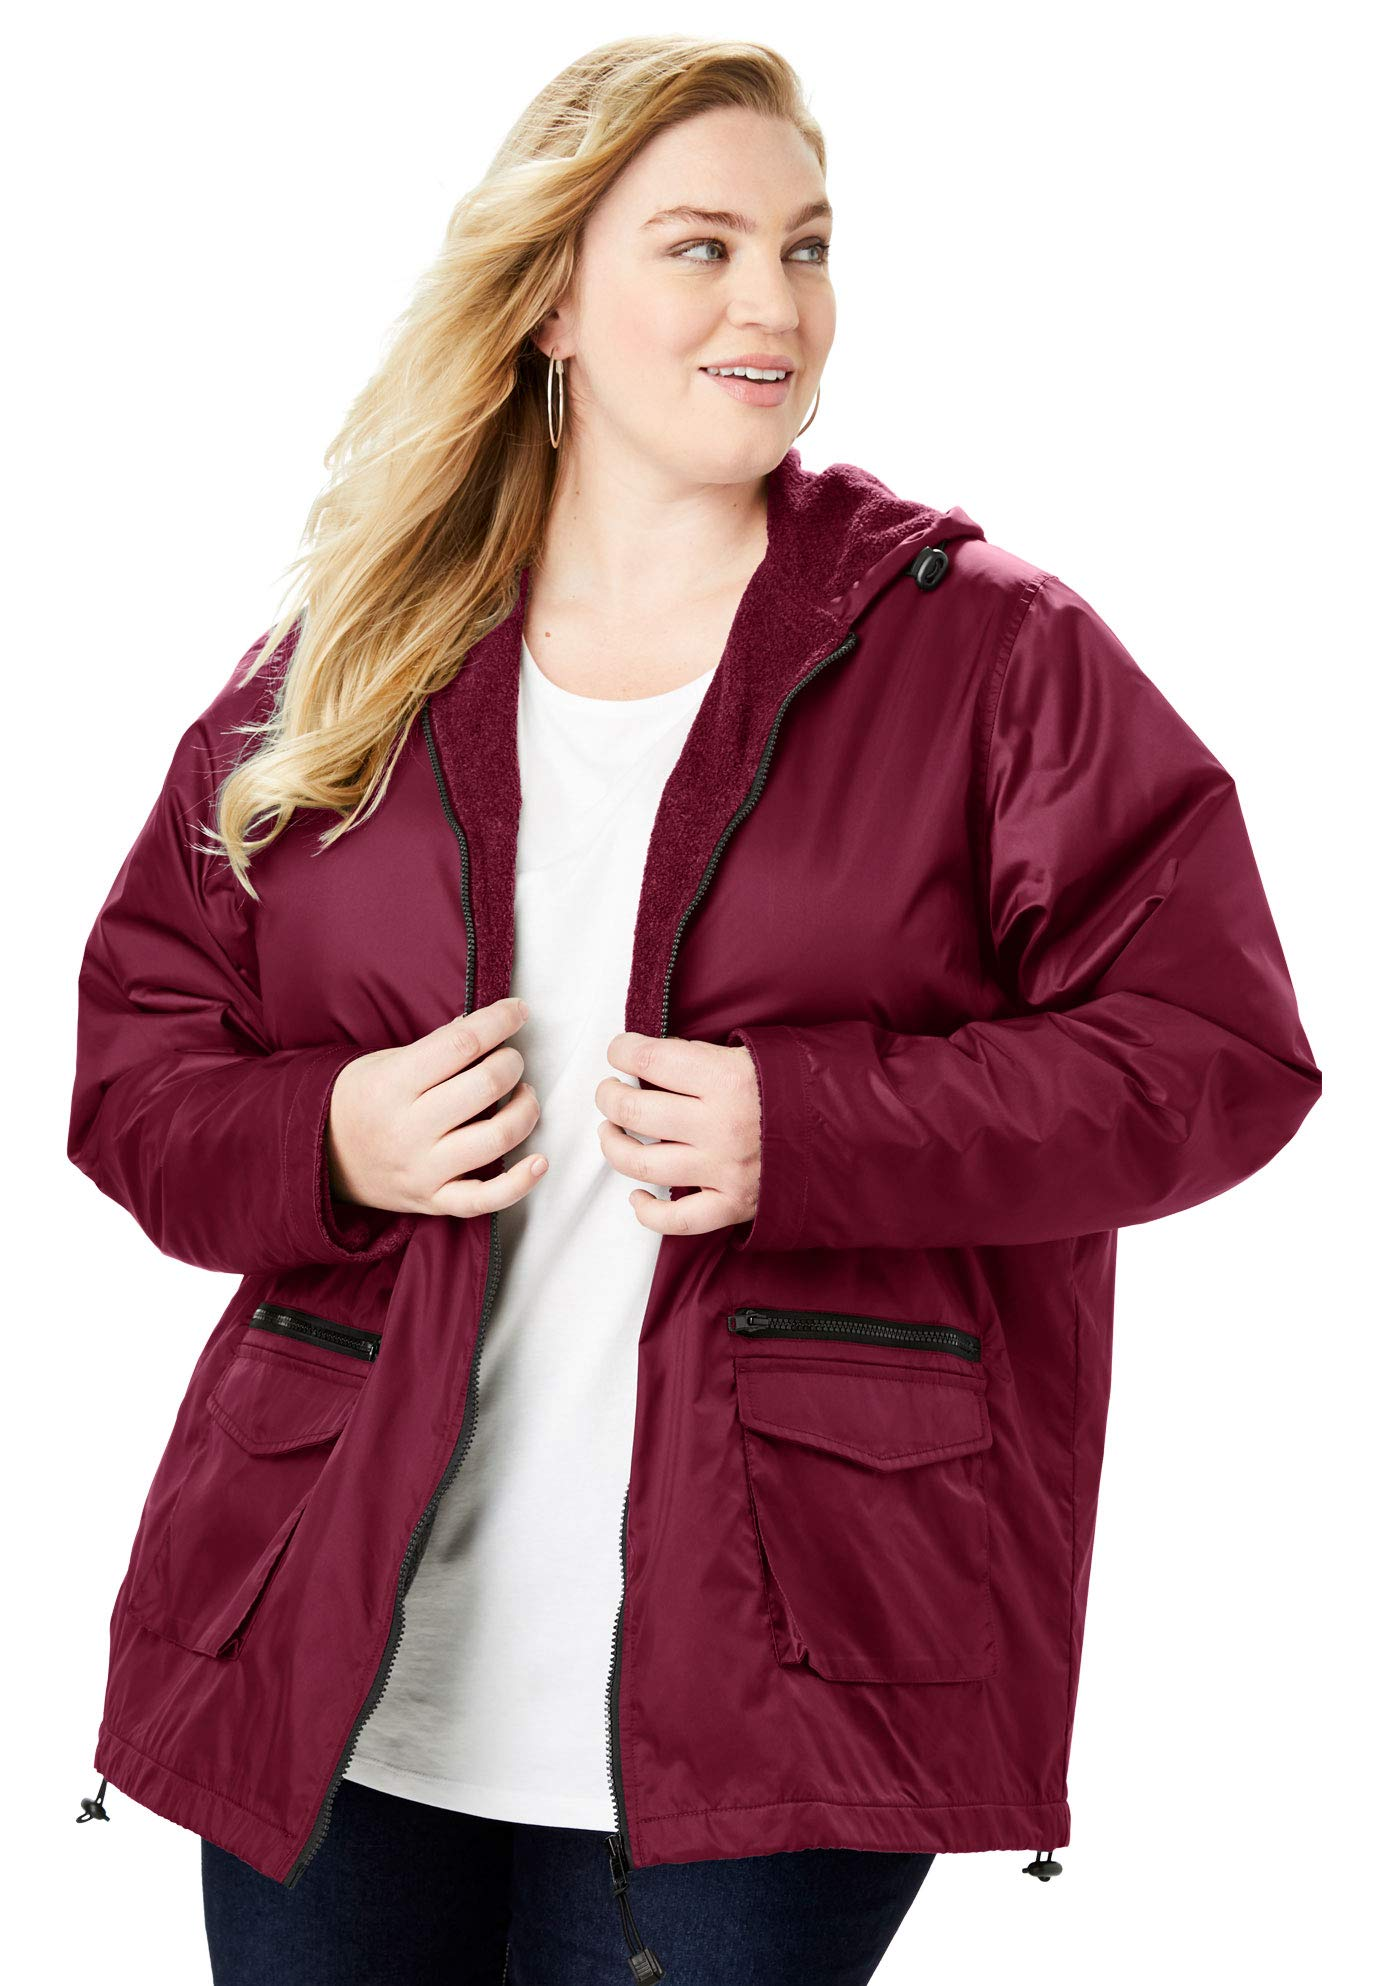 Roamans Women's Plus Size Hooded Jacket with Fleece Lining - Merlot, 2X by Roamans